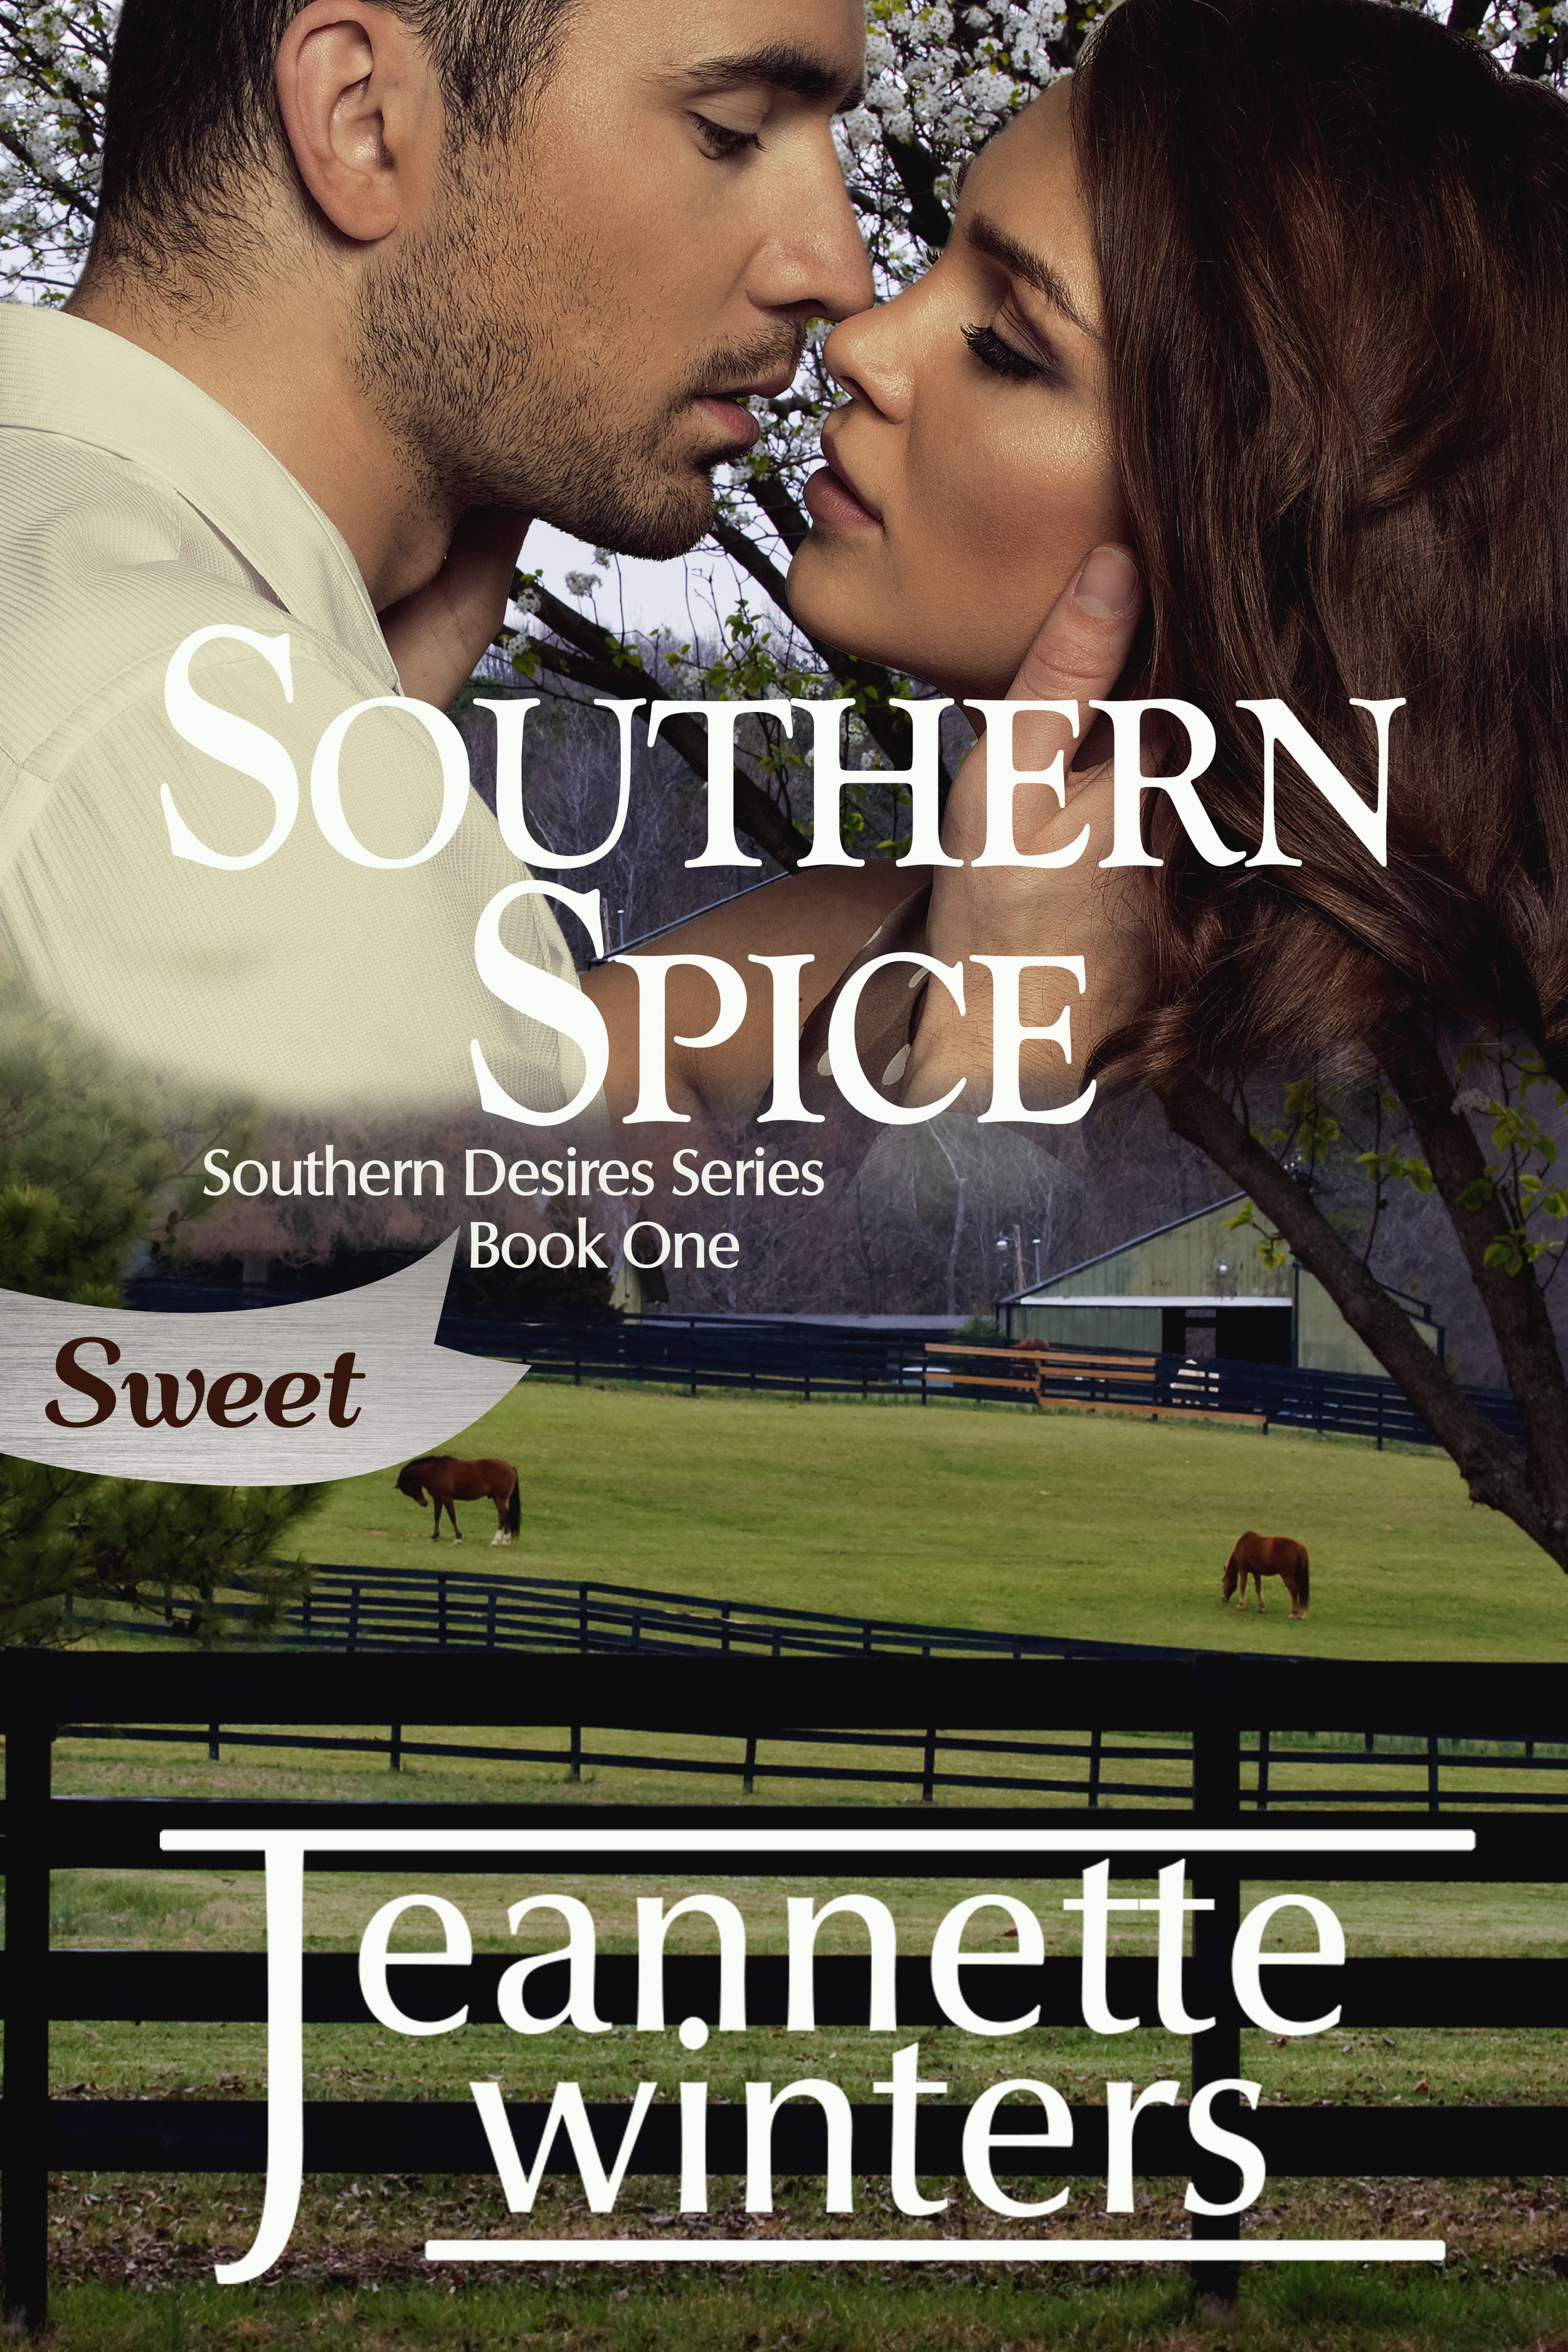 Enjoy this clean and wholesome version of Southern Spice. Same story without the spice. The Sweet version still contains adult situations and relationships. If you prefer the hotter version be sure to download the original.  Derrick Nash knows the pain of loss. But is he seeking justice or revenge? He doesn't care as long as someone pays the price.  It is Casey Collin's duty at FEMA to help those in need when a natural disaster strikes. After a tornado hits Honeywell, she finds there are more problems than just storm damage. Will she follow company procedures or her heart?  Can Derrick move forward without the answers he's been searching for? Can Casey teach him how to trust again? Or will she need to face the fact that not every story has a happy ending?